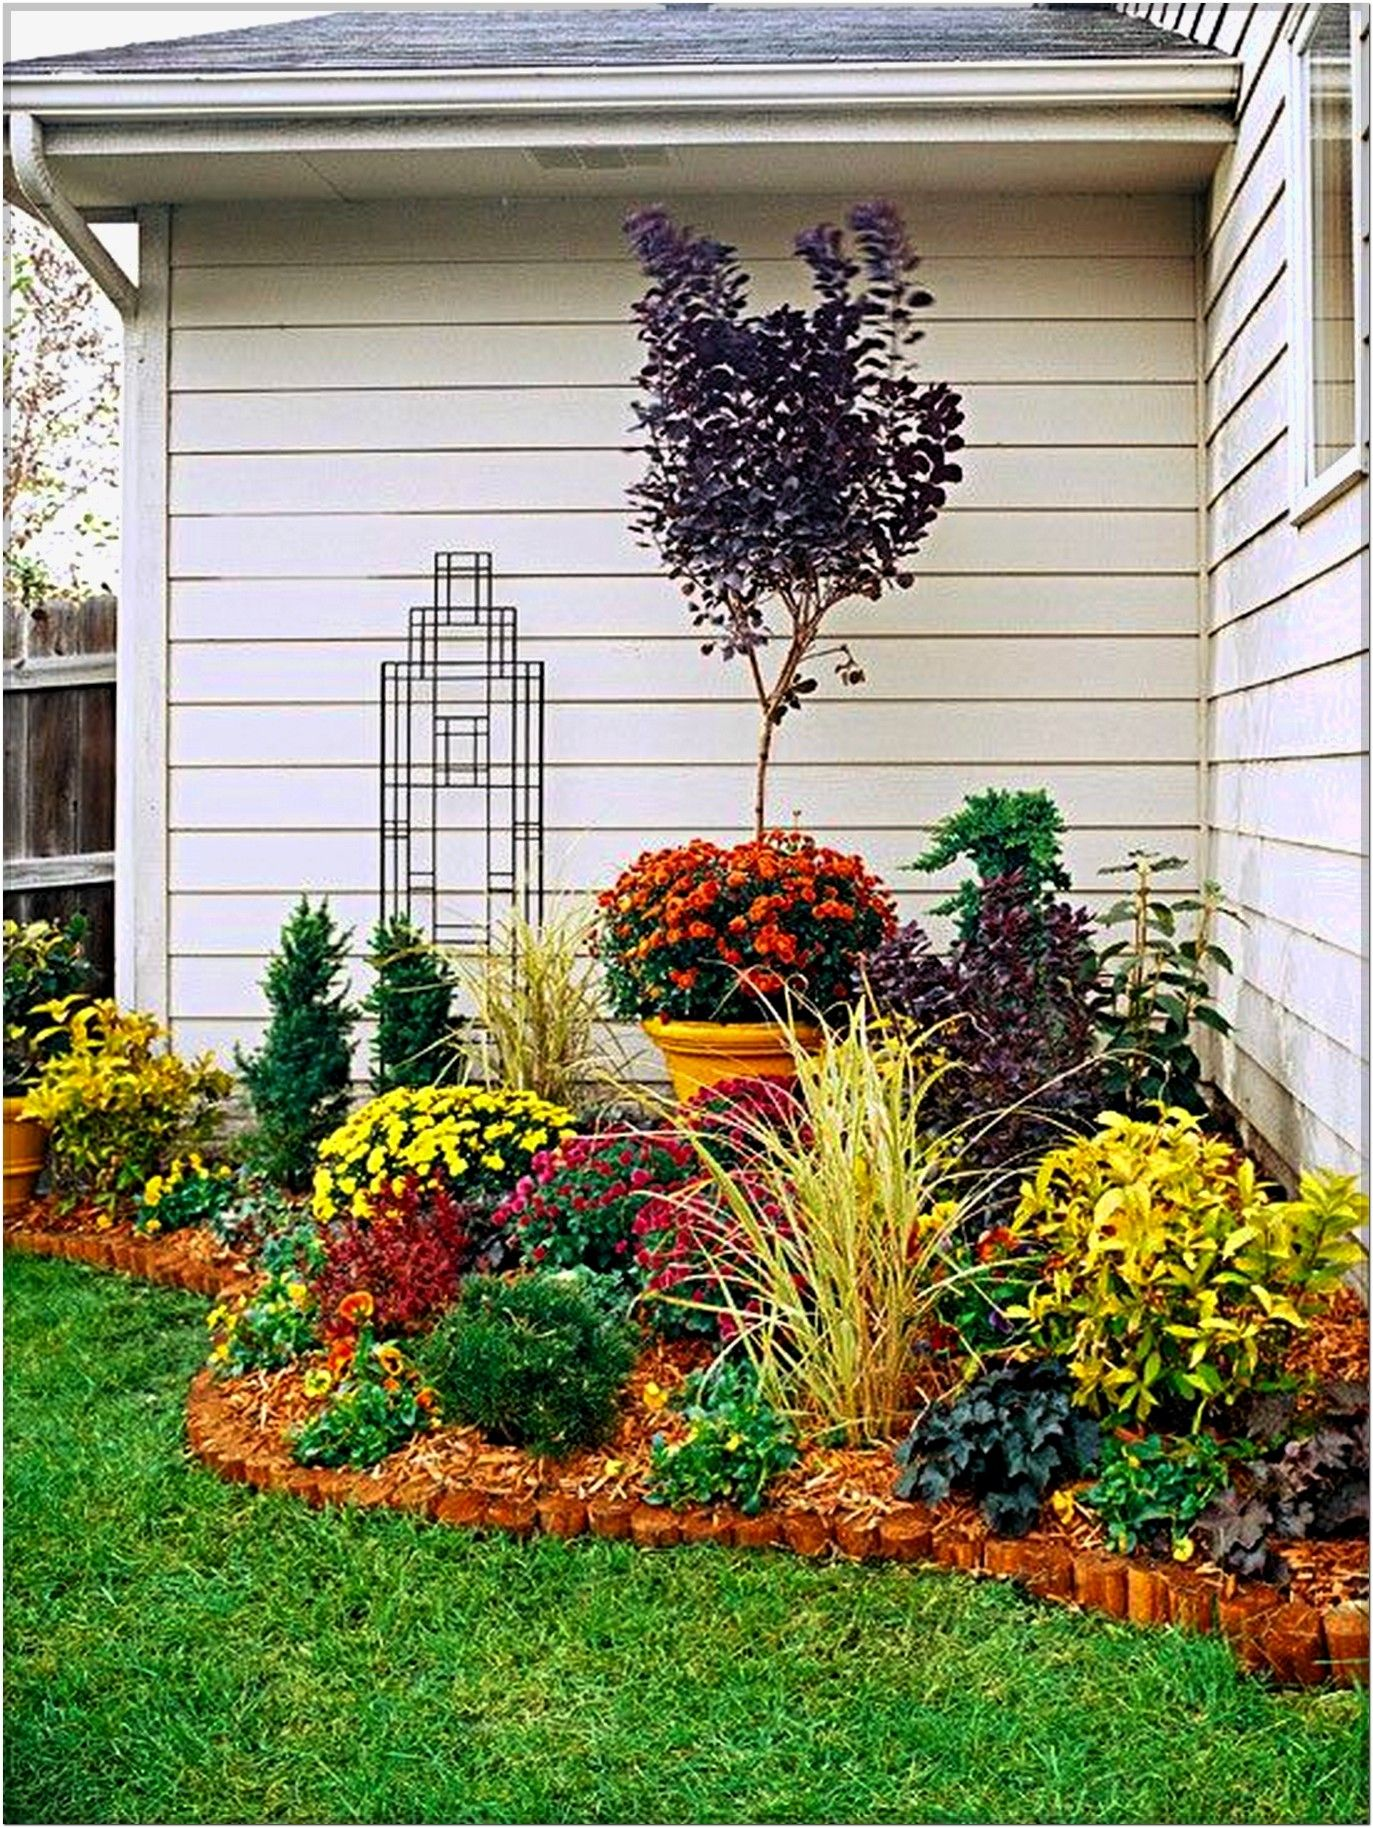 Welcome to the 2015 southern home fall tour small flower gardens small corner garden design diy do it yourself on a budget garden design in alongside backyard or home best exterior home decorating small flower garden solutioingenieria Image collections